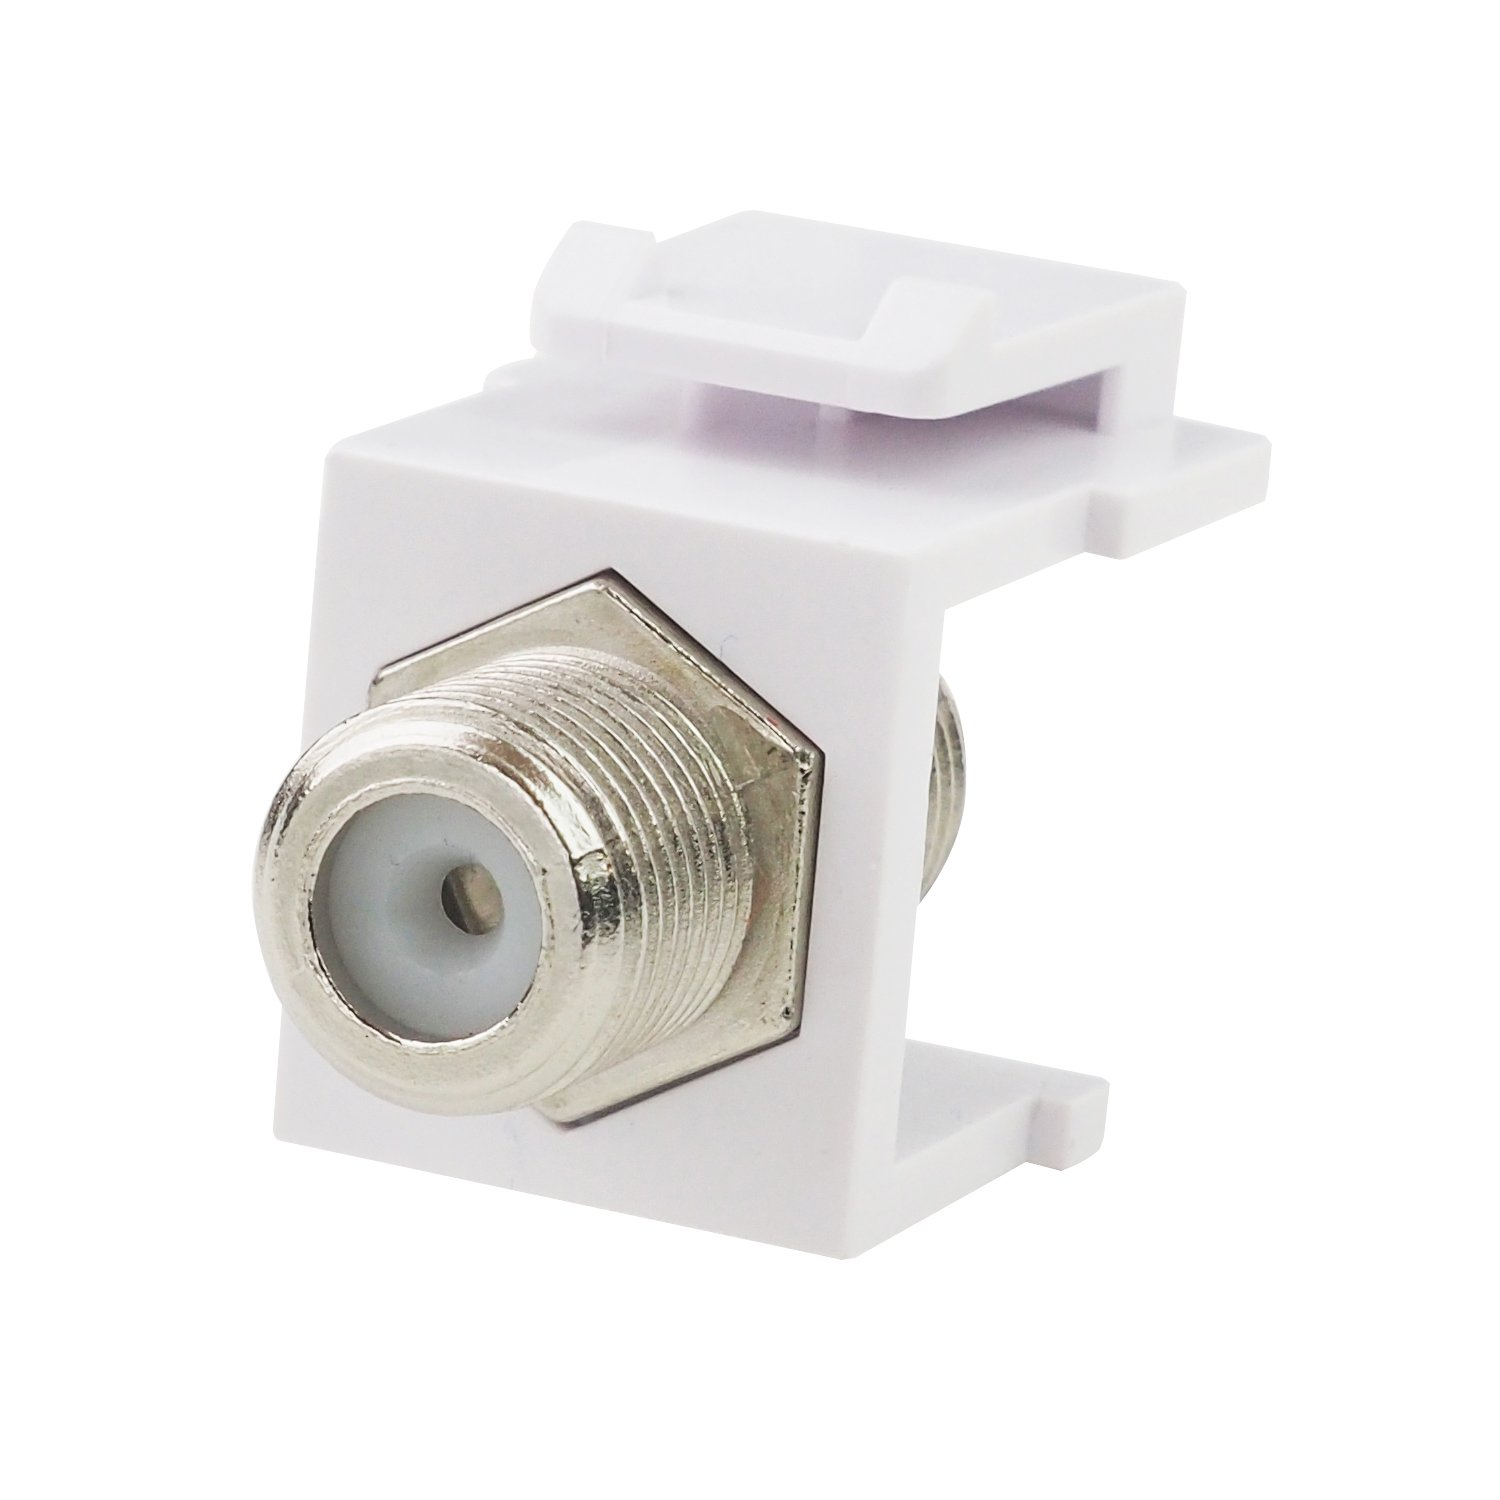 LINKOMM (10 Pack) Multimedia F-Type Female to Female Barrel RG6 Coaxial Connector Keystone Jack Insert for Wall Plate, White